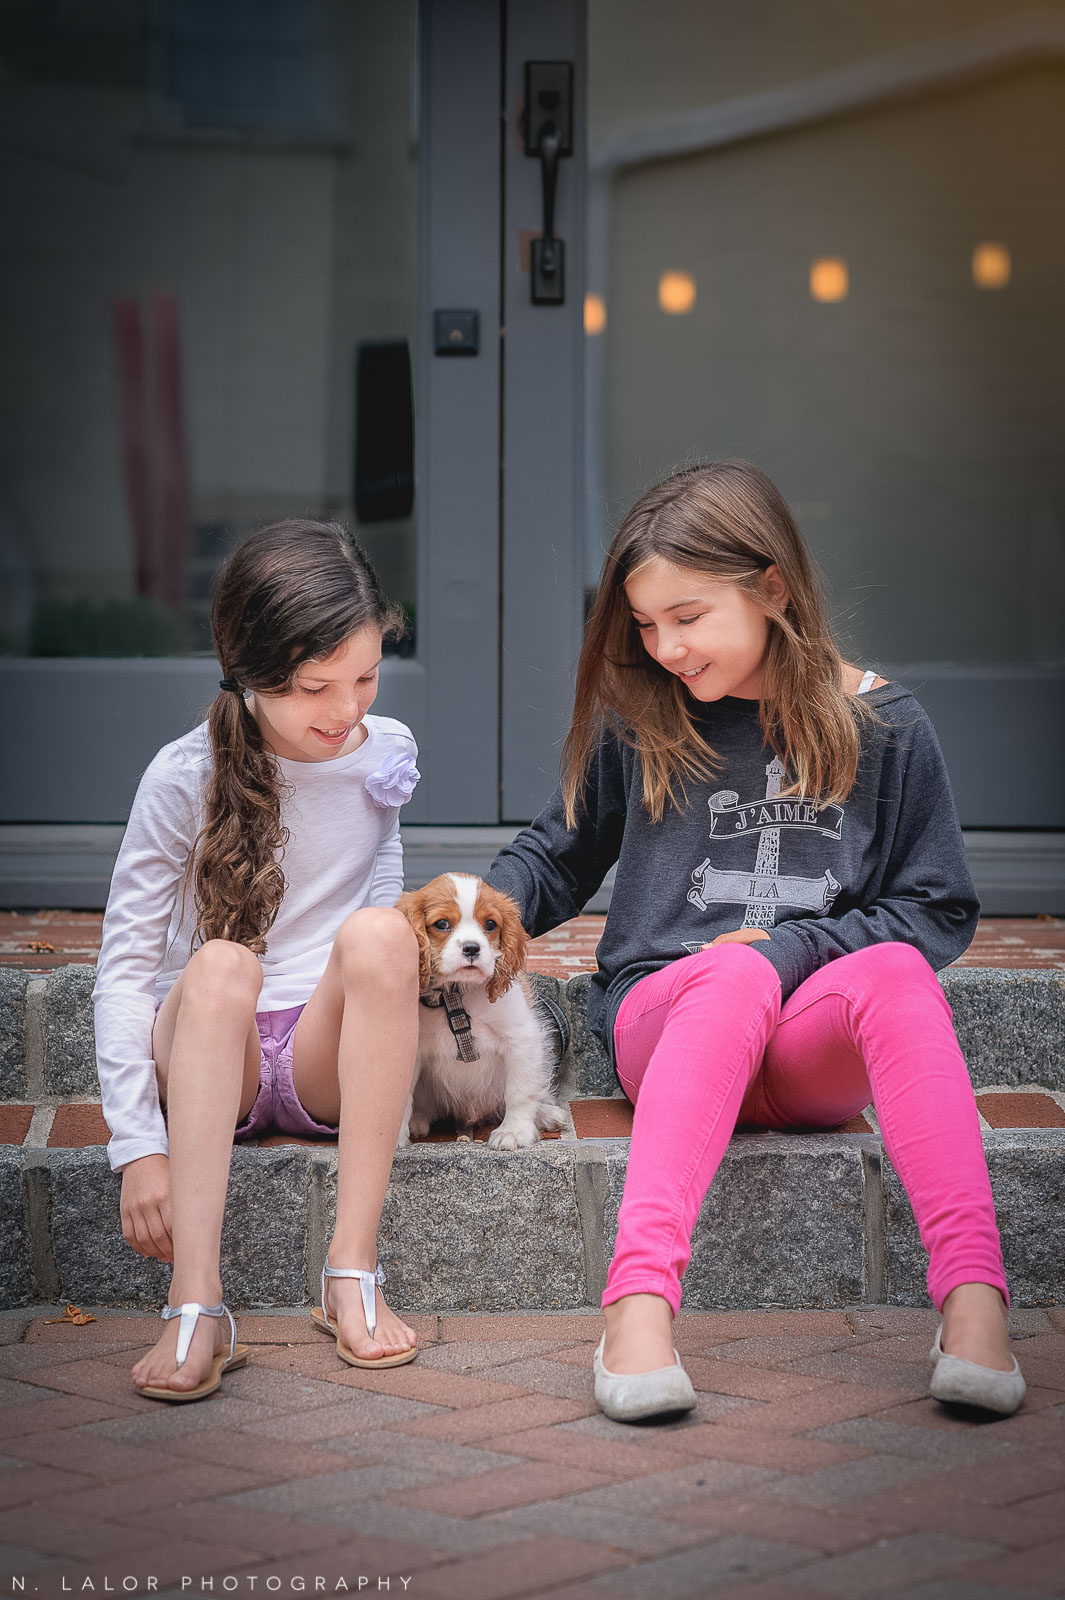 nlalor-photography-090314-fun-styled-tween-session-greenwich-avenue-connecticut-1.jpg